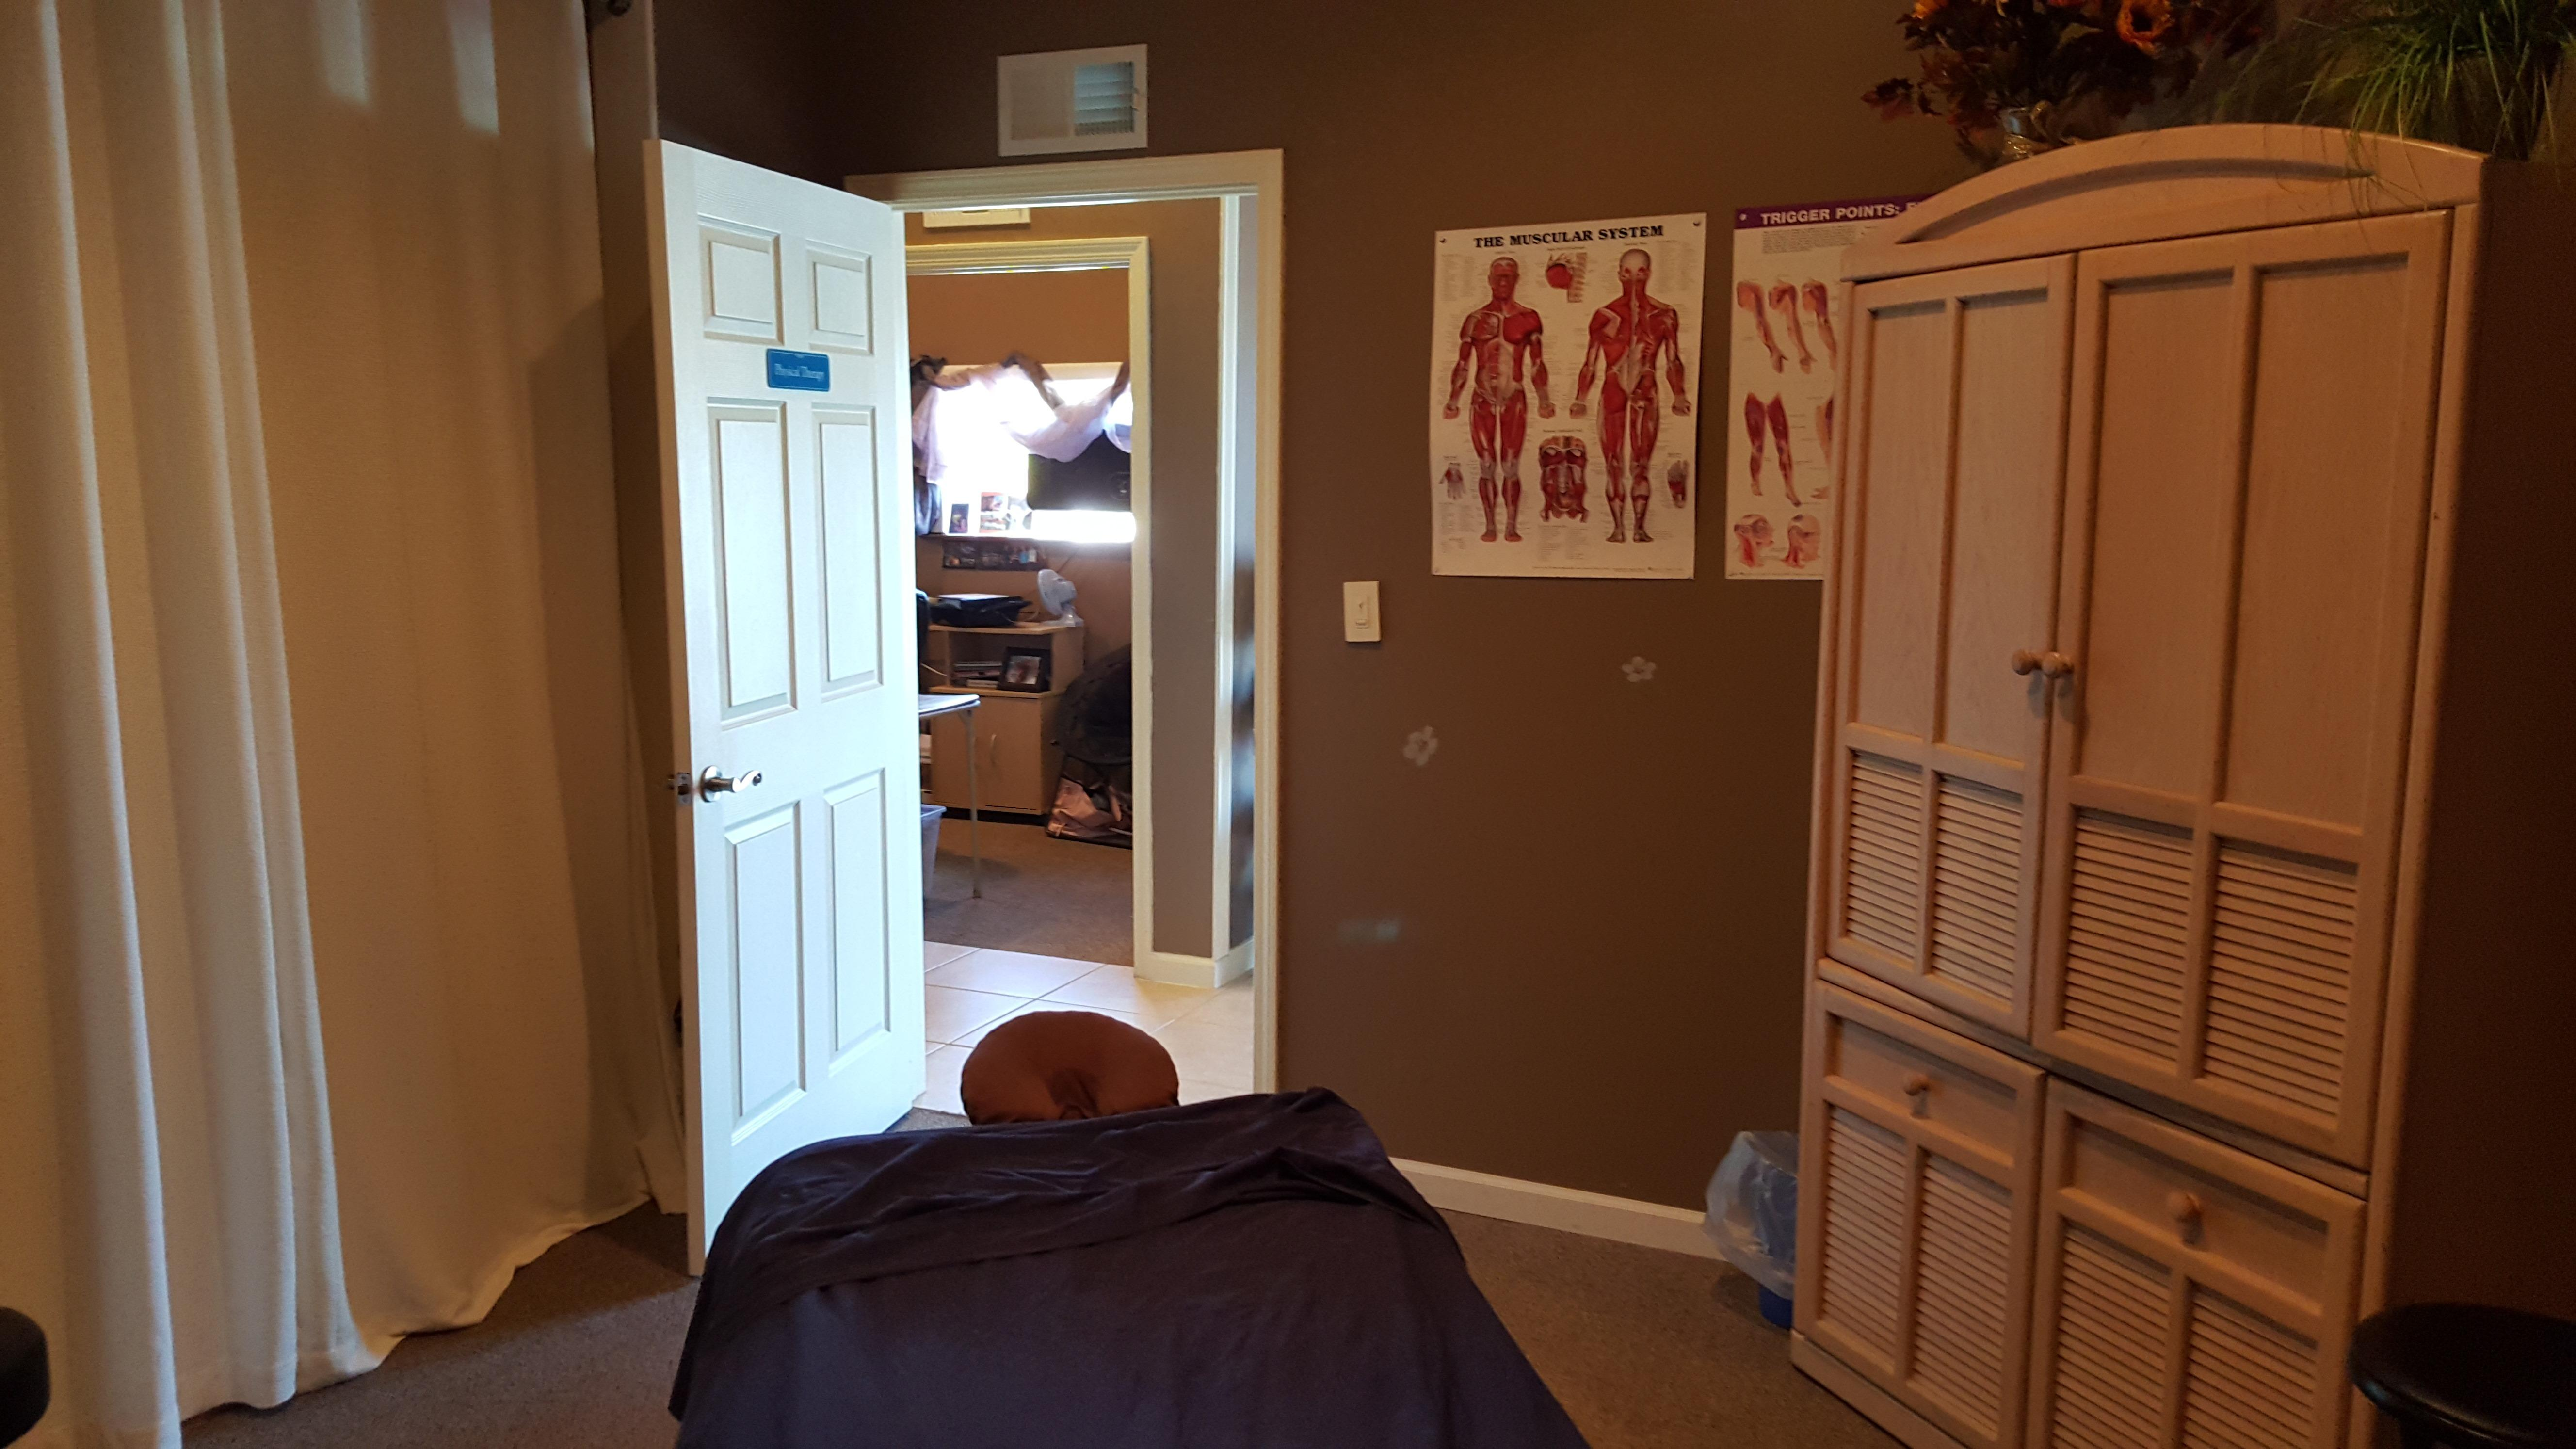 North Florida Chiropractic Physical Therapy image 4